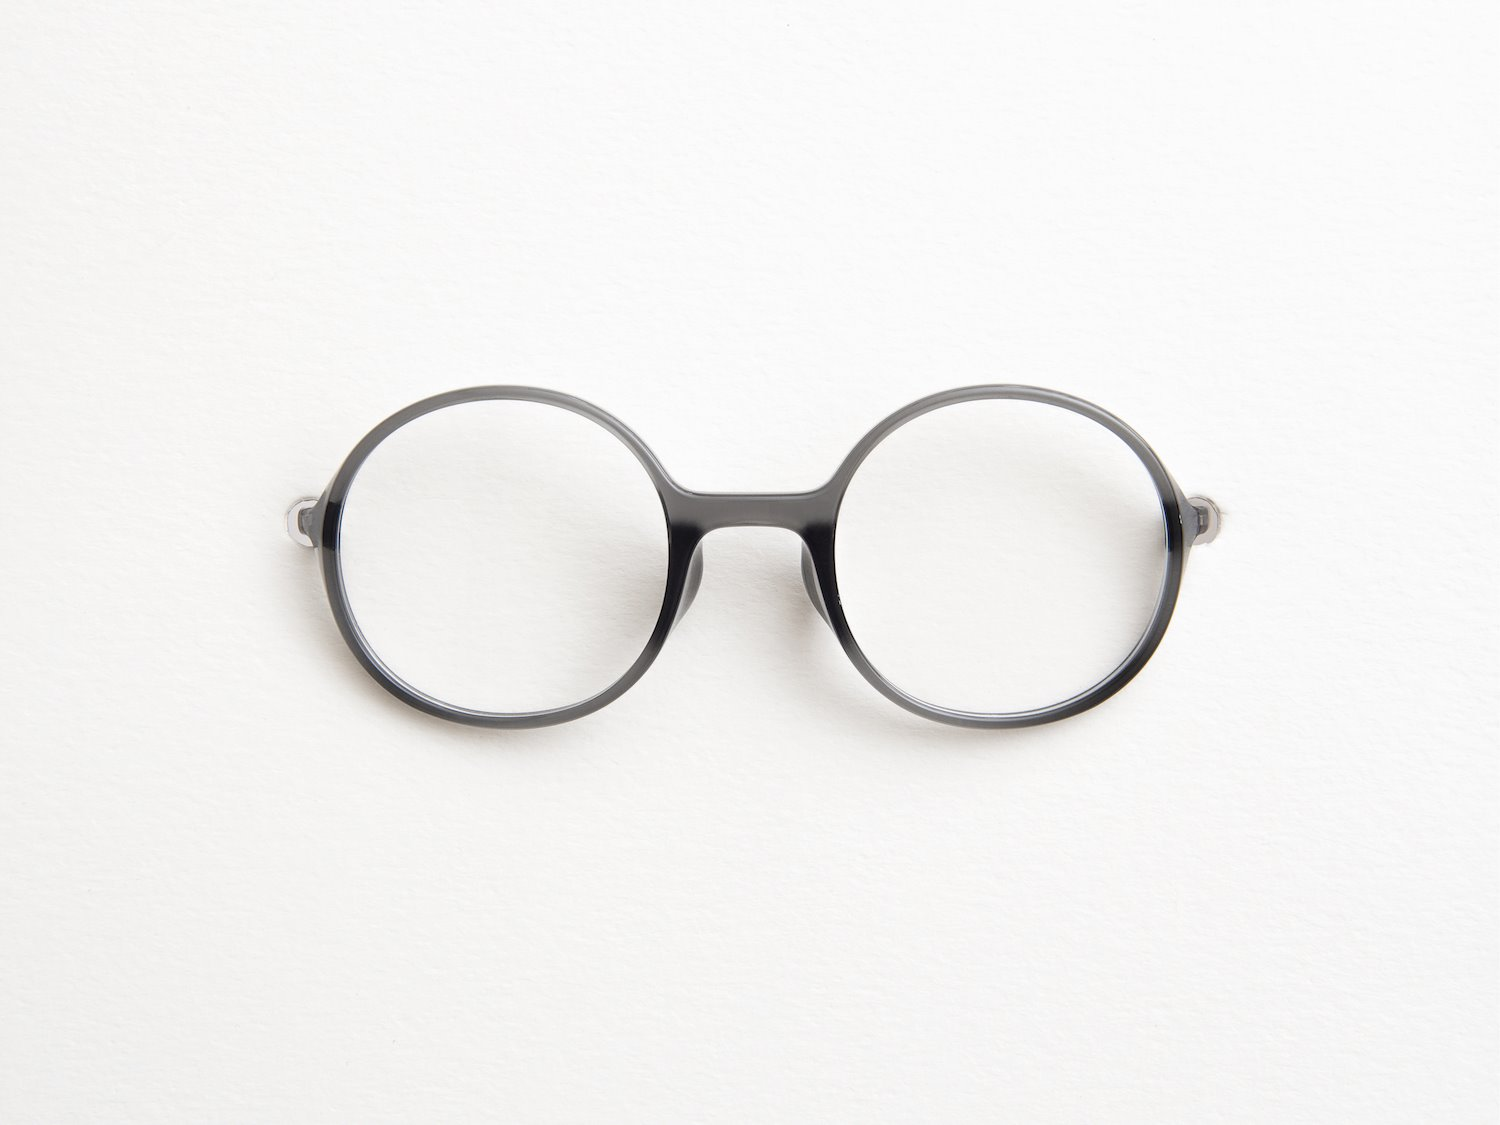 gafas Sugata de los hermanos Bouroullec para Jins Design Project 9